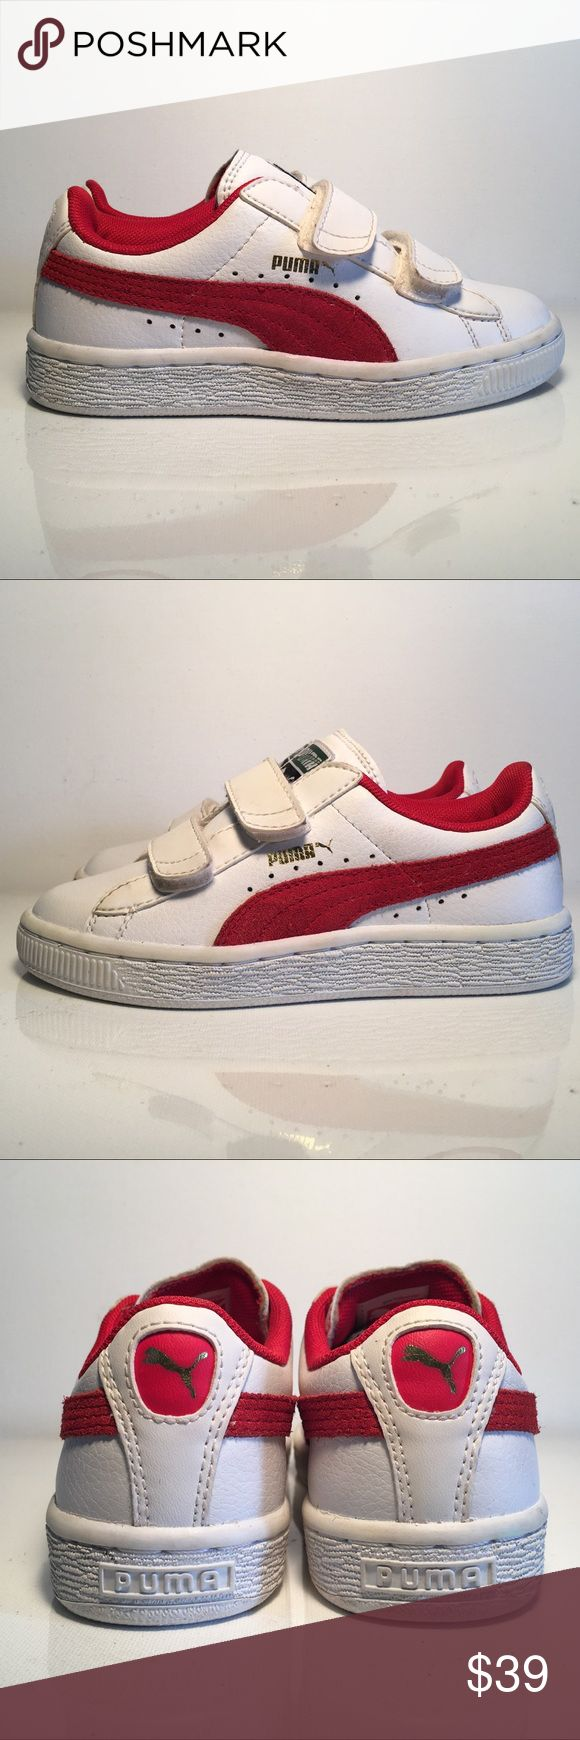 New Auth Puma Basket Classic Velcro Kids Leather New Auth Puma Basket Classic Velcro Kids Leather Size 12 Trainers    Vulcanized midsole for stability Leather upper for durability Two Velcro-like strap closures for a secure snug fit Red suede stripe branding on the side Inside padding  If you're looking for a classic low top trainer for your kids then look no further. The Puma Basket Classic are the perfect pick as it is stylish, comfotable, cool and will support your kids in their everyday…